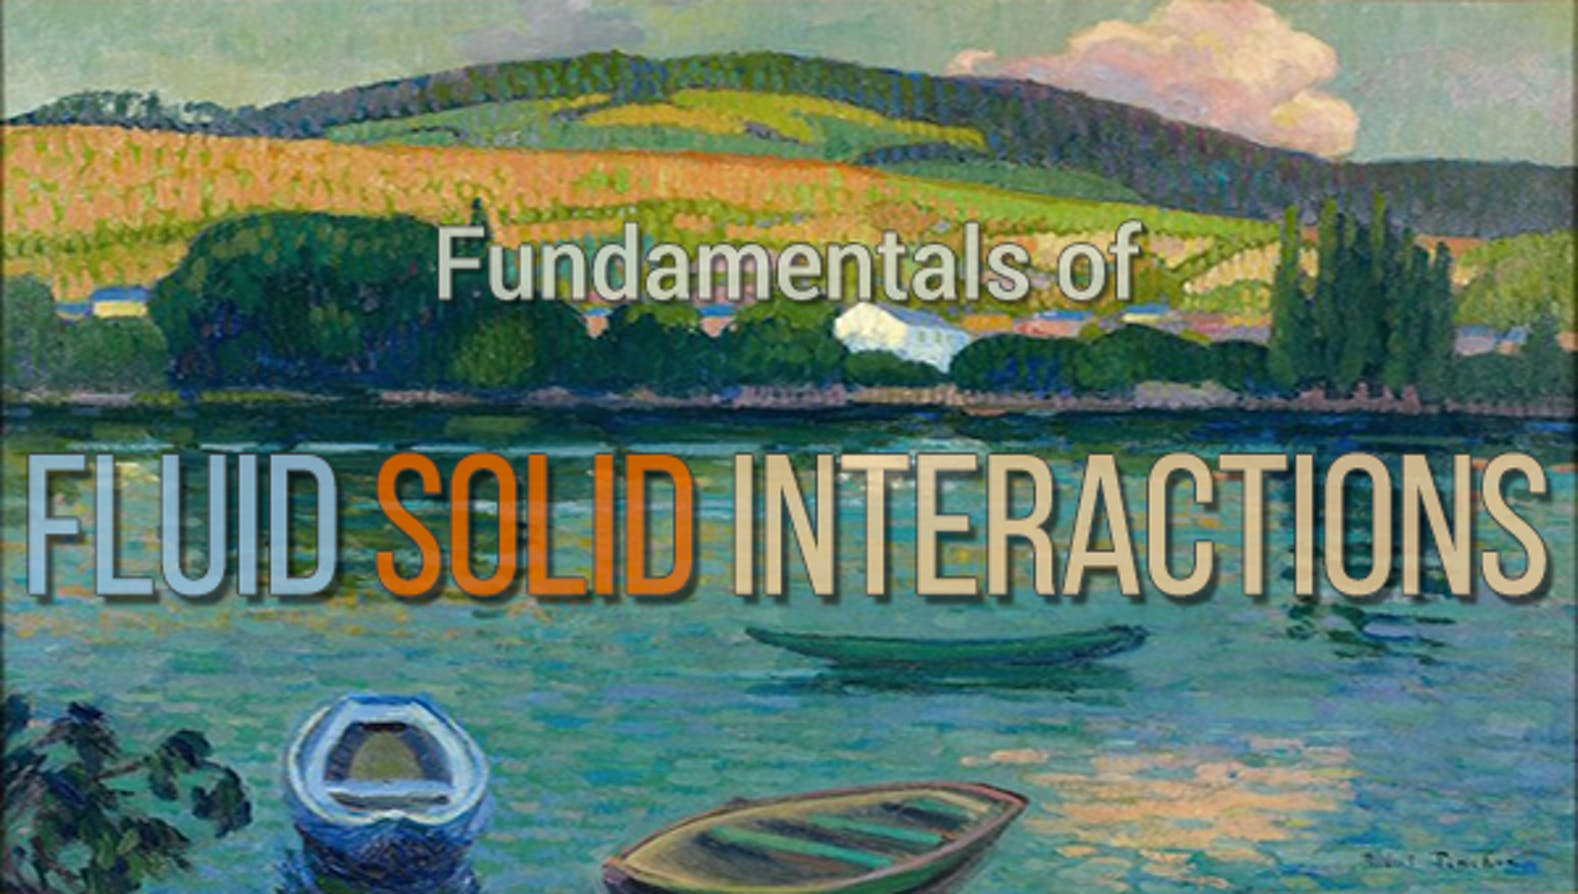 Fundamentals of Fluid-Solid Interactions | Coursera